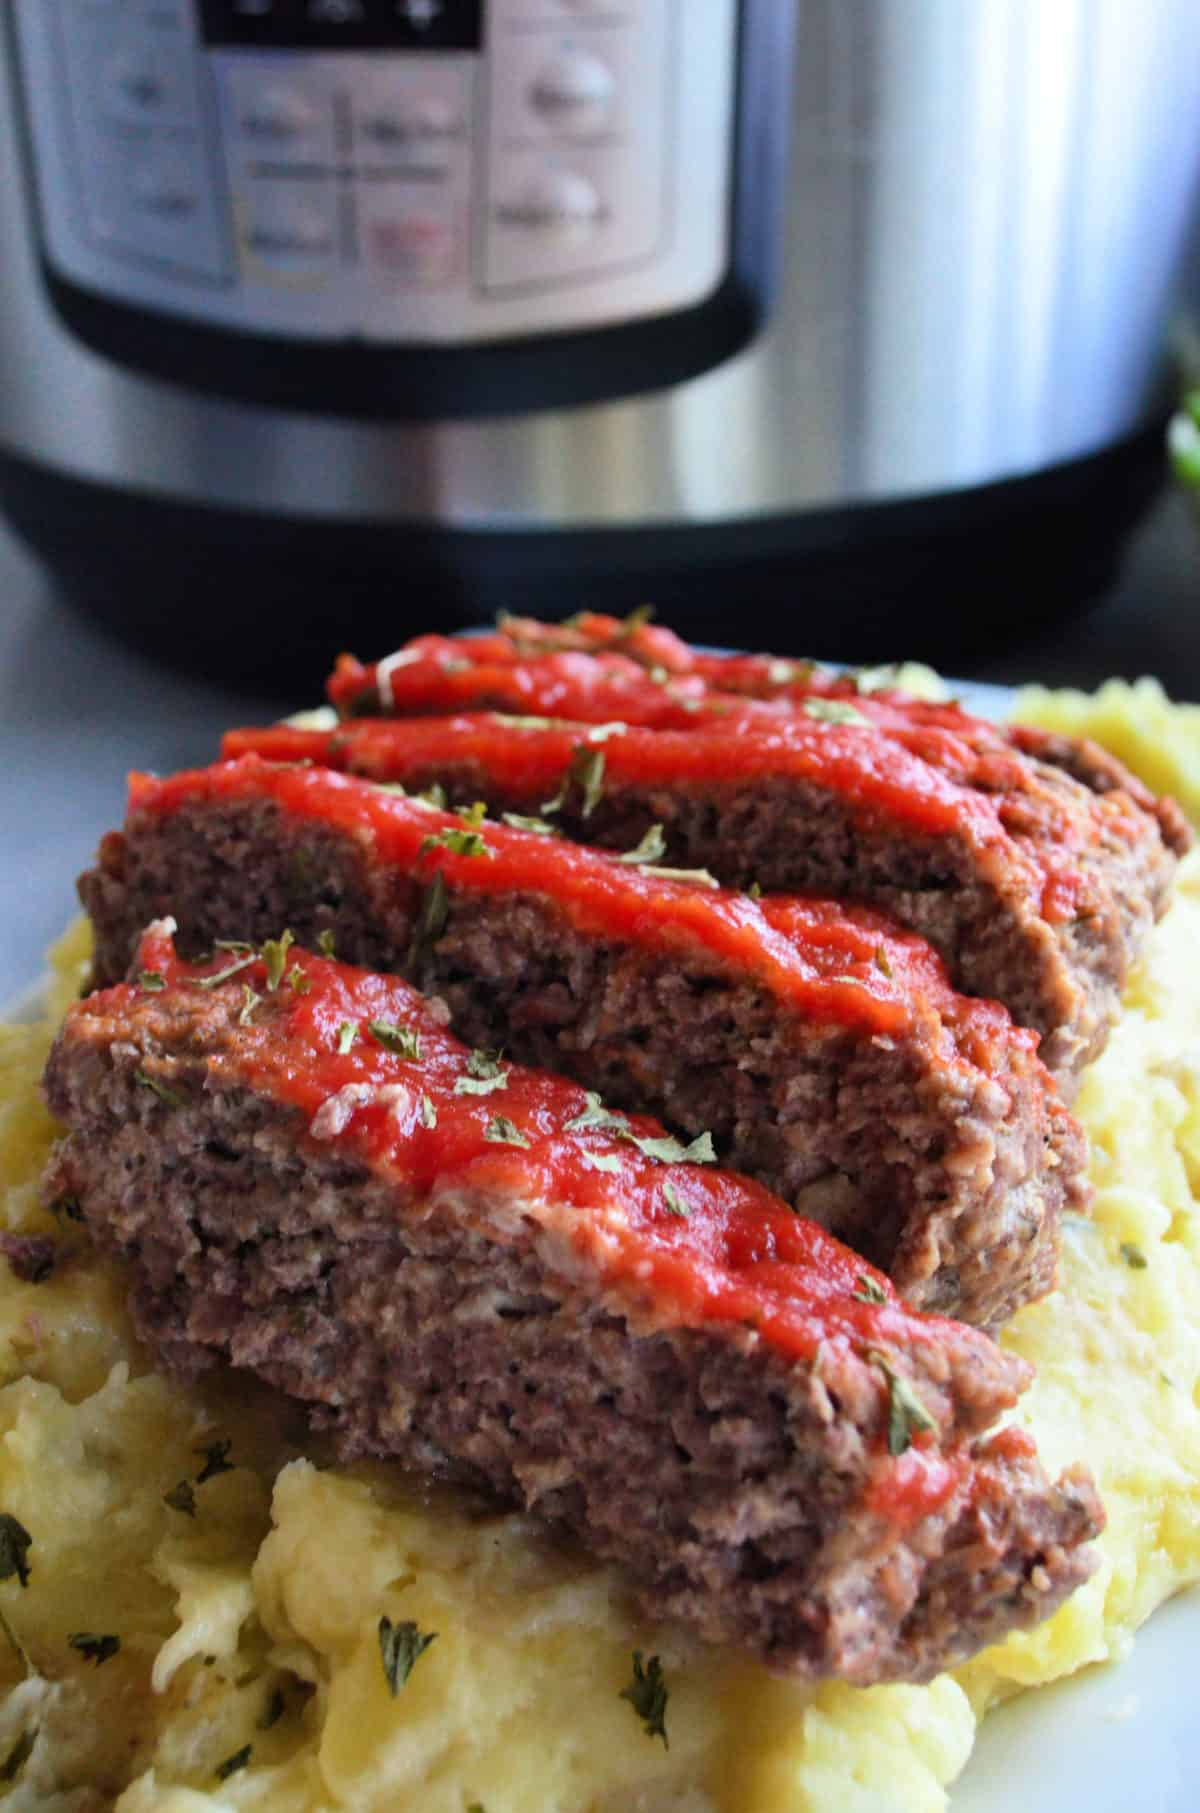 closeup front view of sliced meatloaf topped with herbs and red sauce over mashed potatoes.